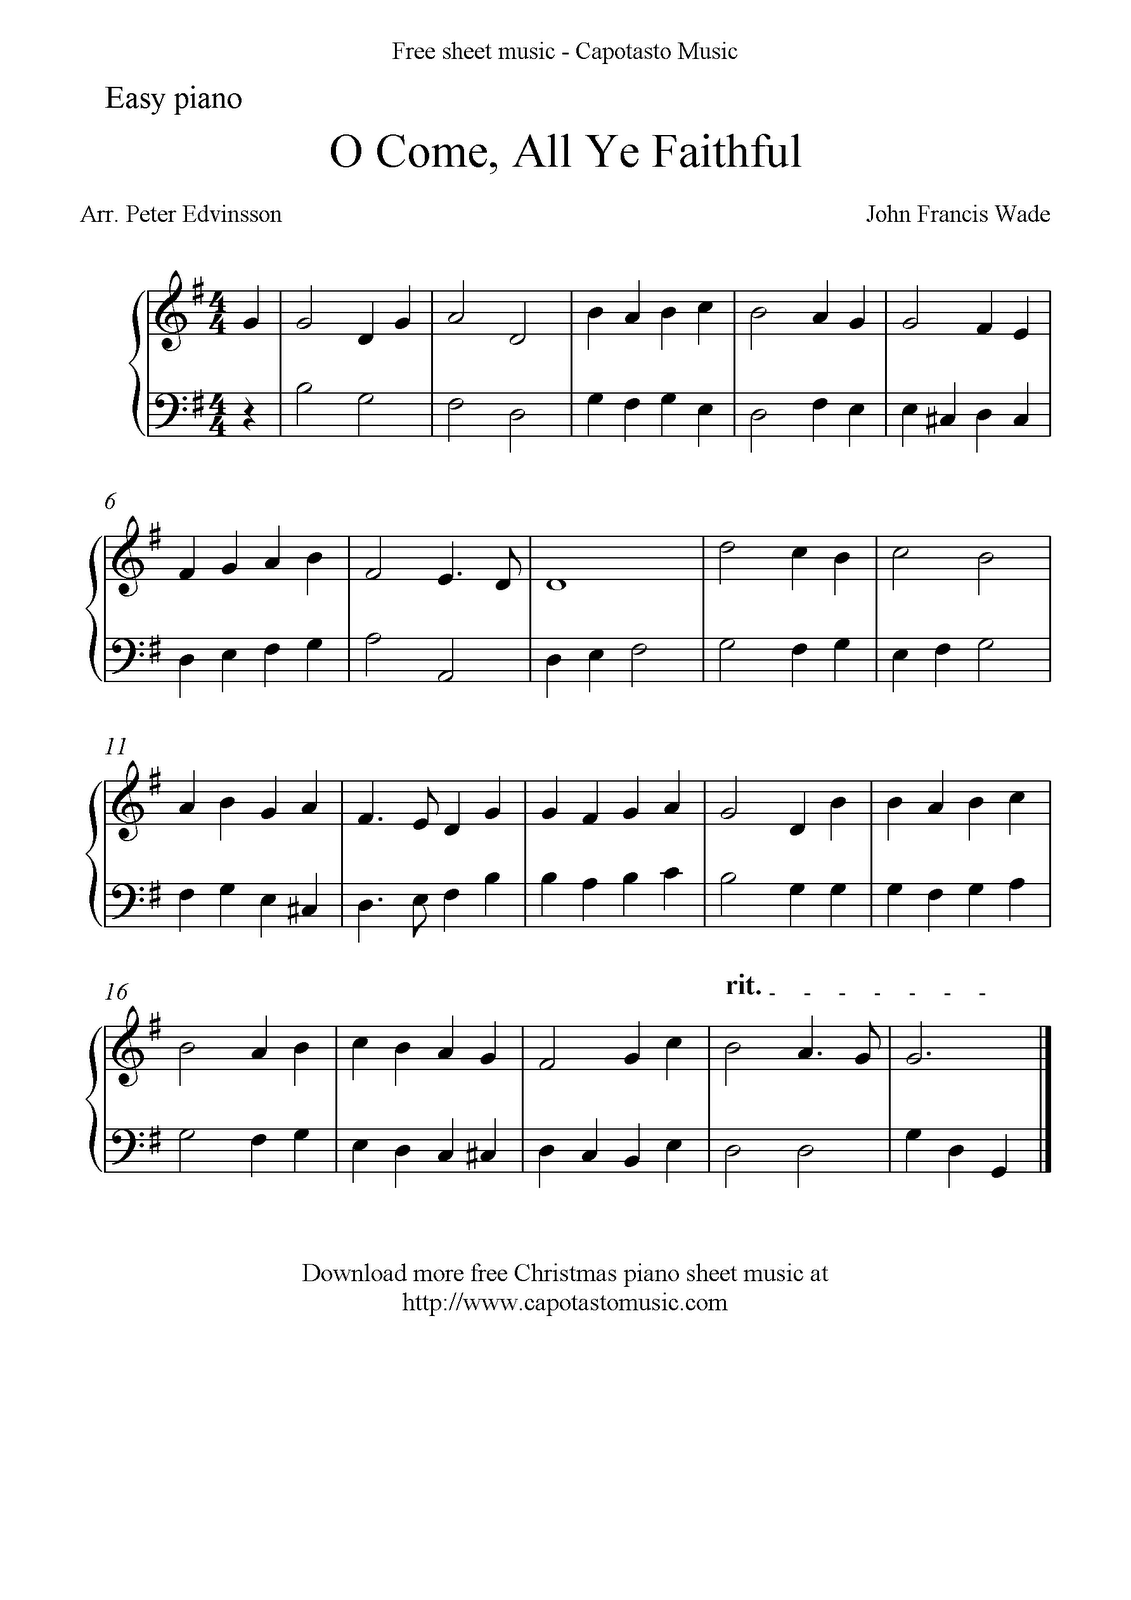 Free Easy Christmas Piano Sheet Music, O Come, All Ye Faithful